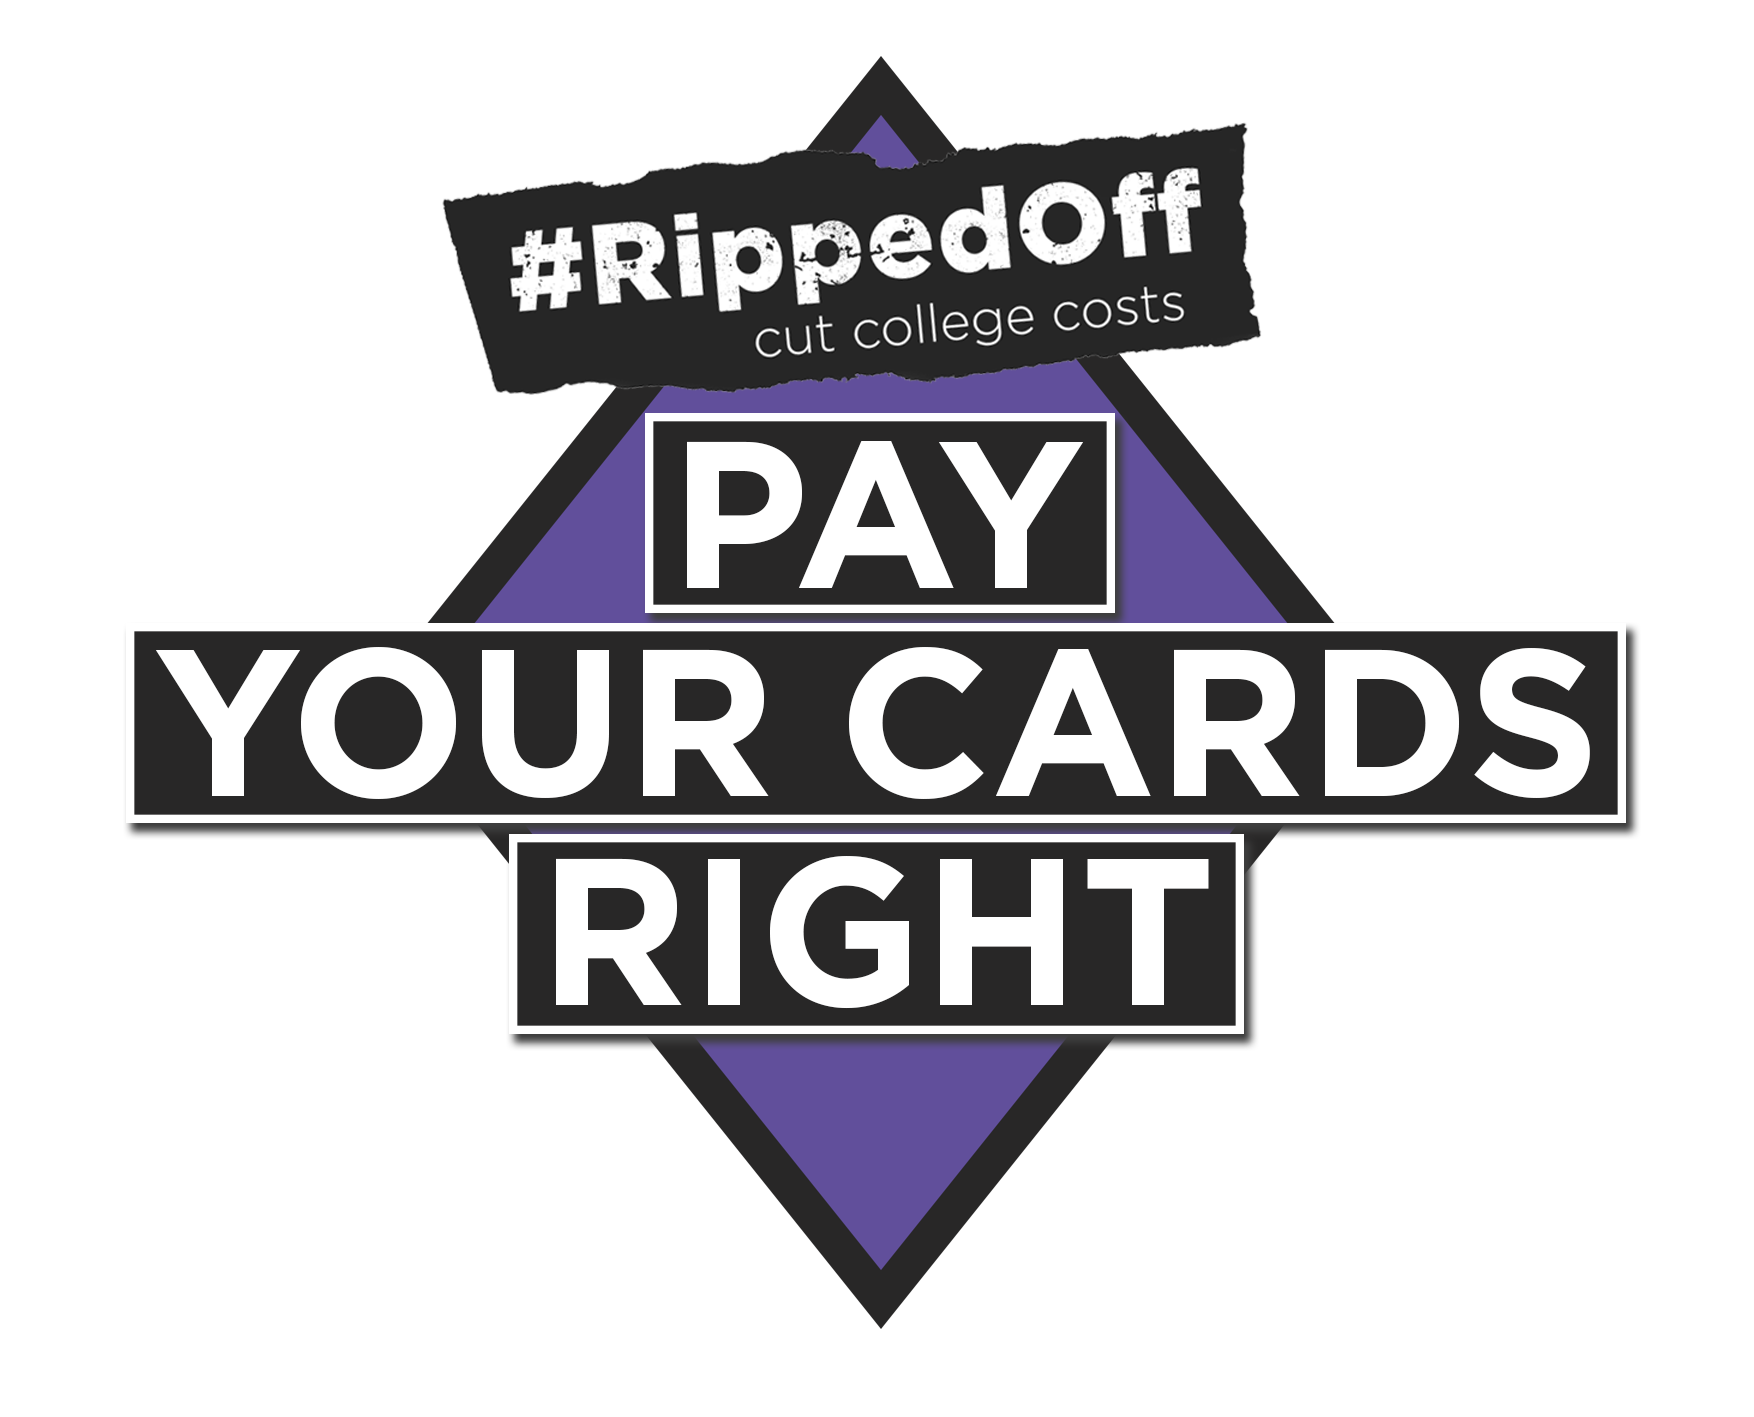 Pay your cards right logo